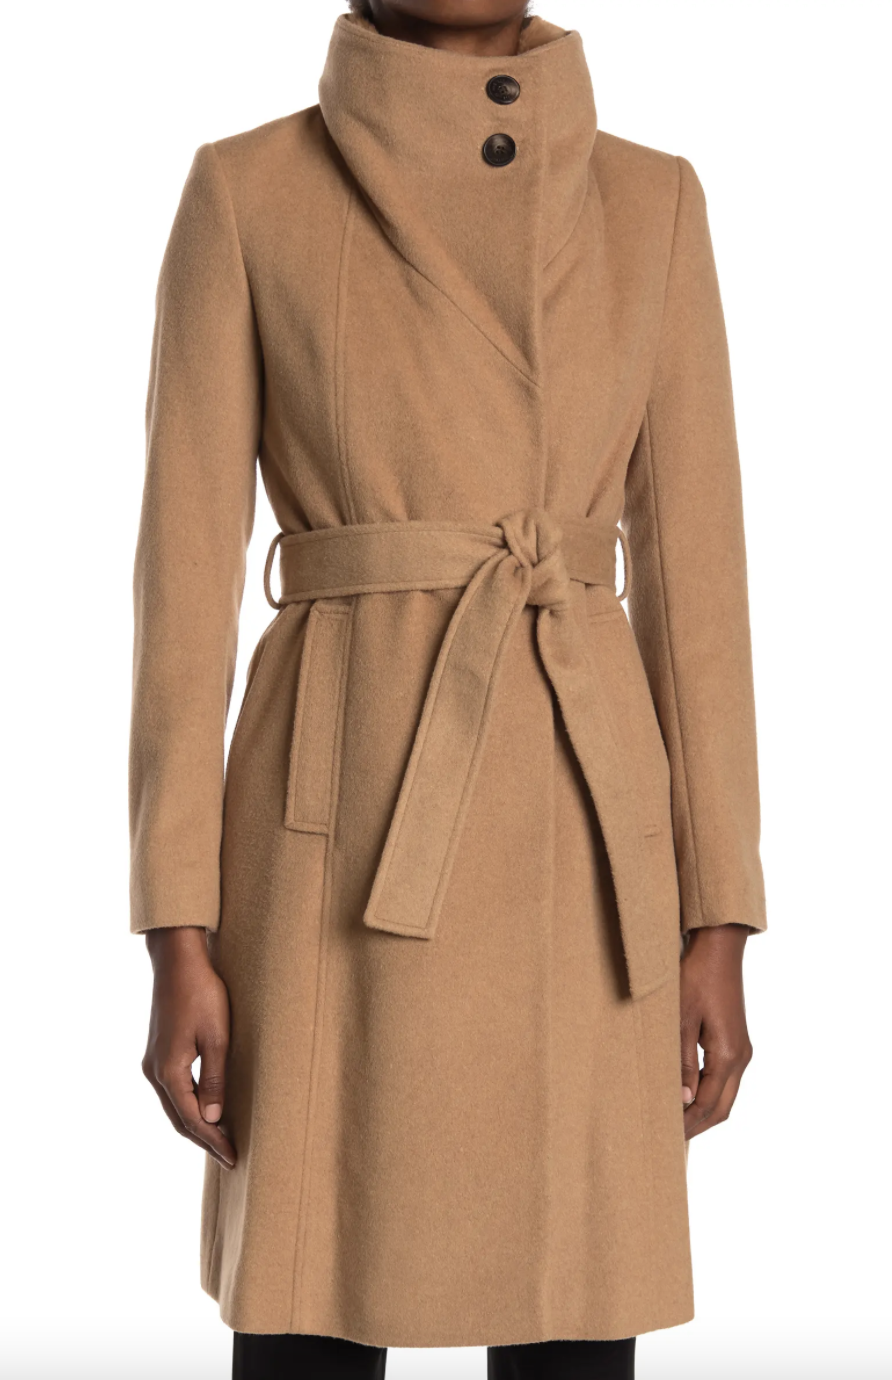 dark beige Sam Edelman Faux Fur Belted Coat with buttons at neck